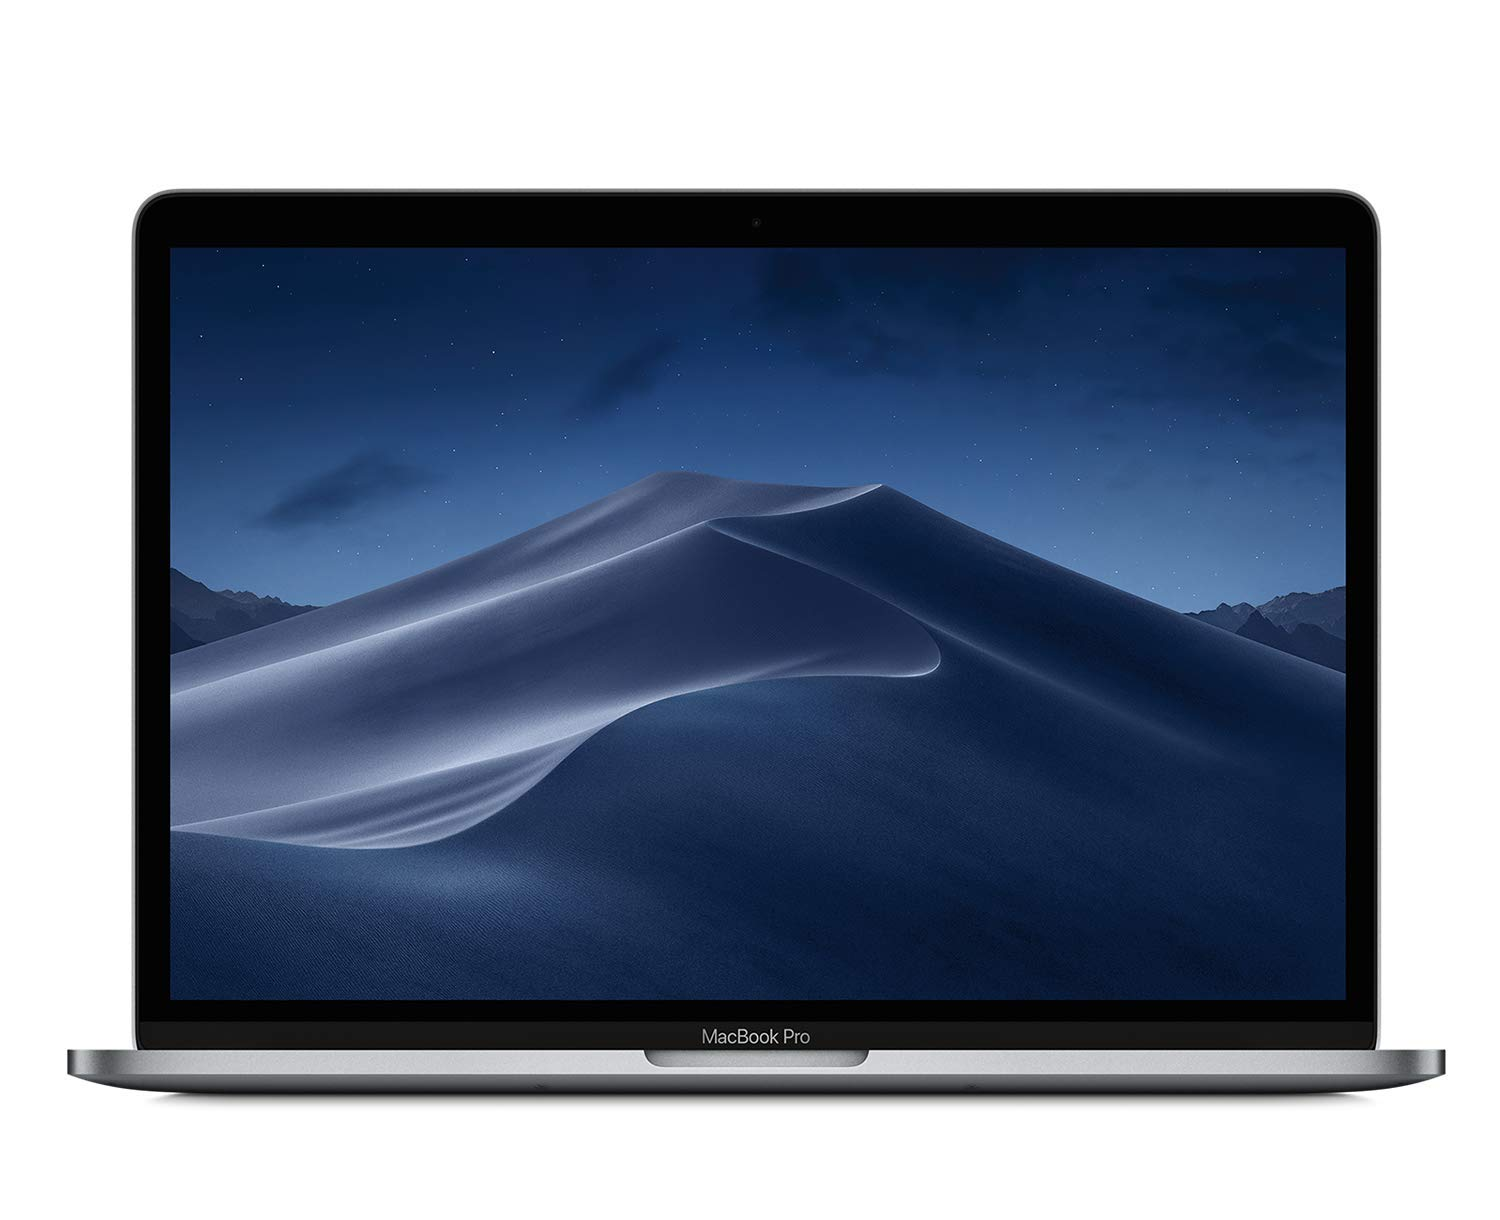 Apple MacBook Pro (13'' Retina, Touch Bar, 2.3GHz Quad-Core Intel Core i5, 8GB RAM, 512GB SSD) - Space Gray (Latest Model)